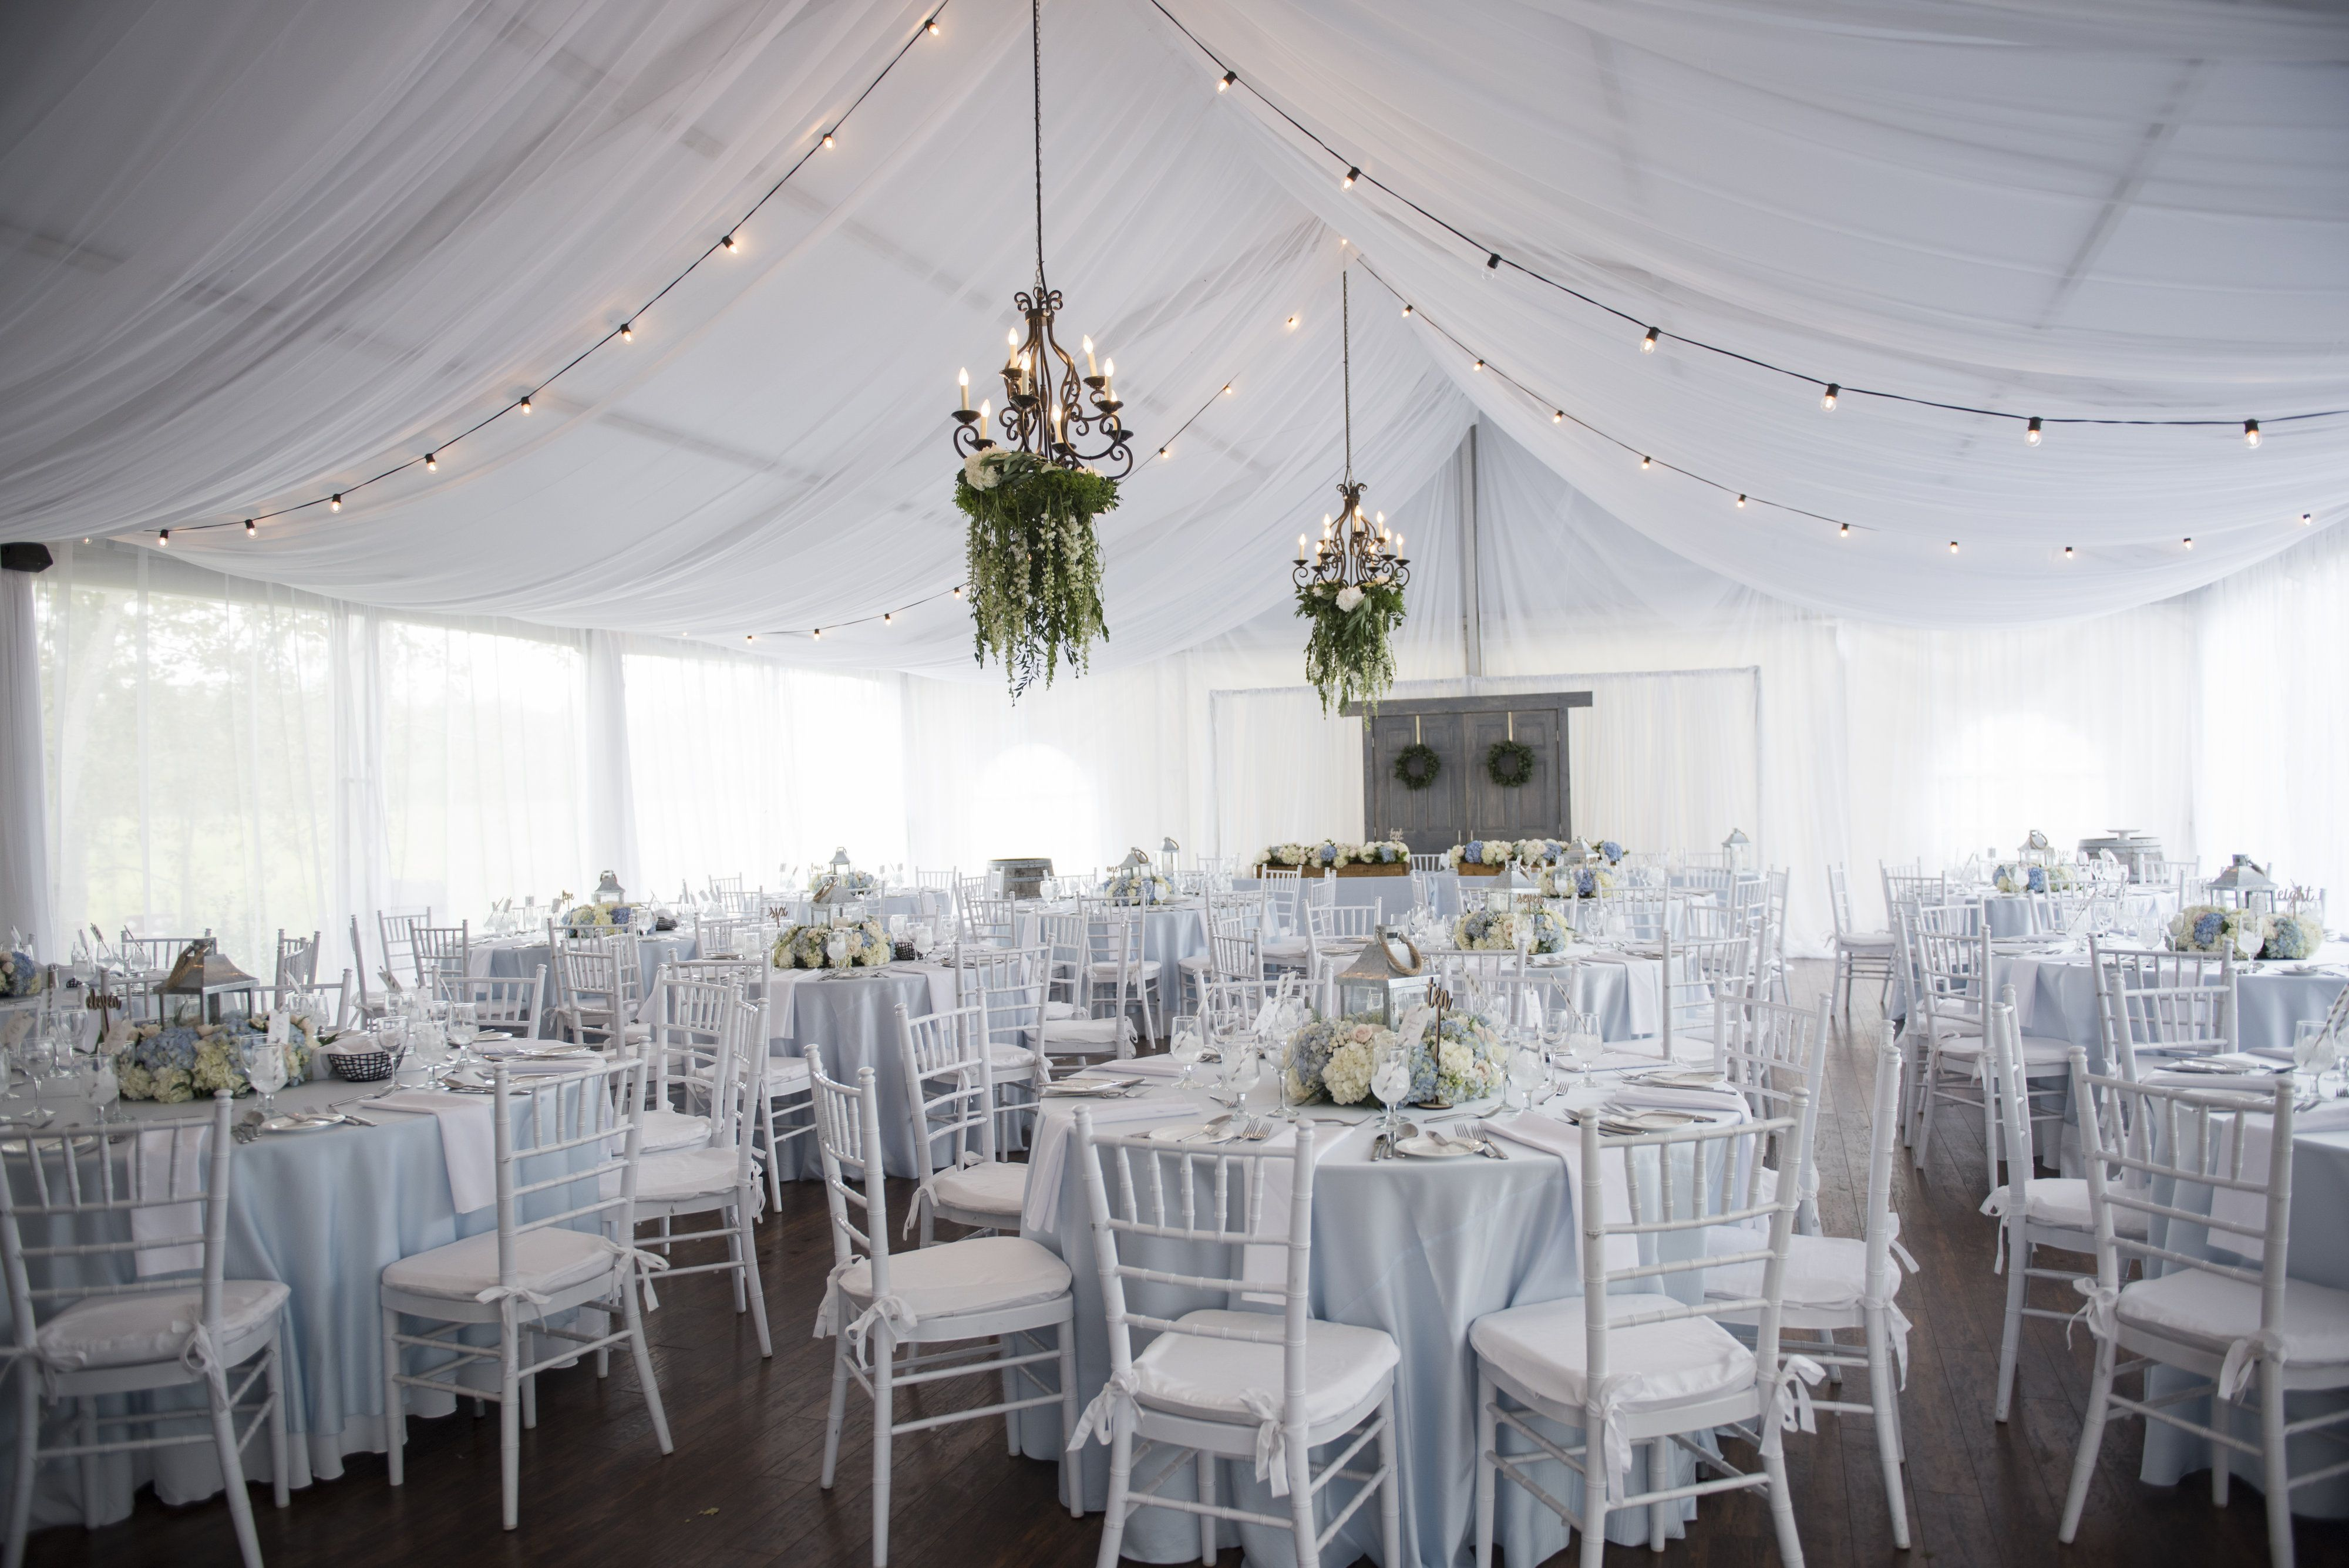 A tented wedding with floral chandeliers in fish creek provincial a tented wedding with floral chandeliers in fish creek provincial park calgary alberta aloadofball Images